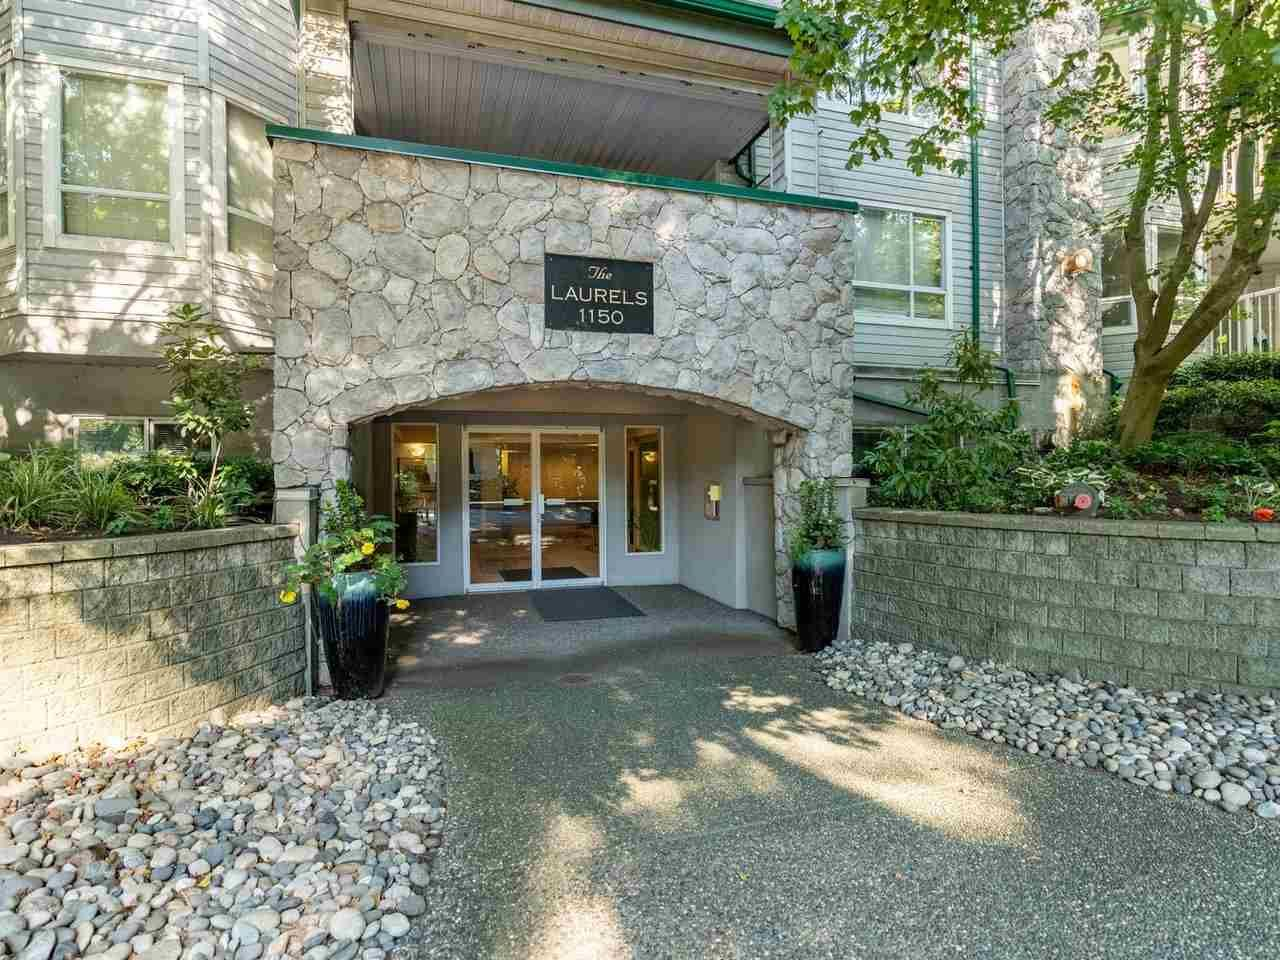 """Main Photo: 305 1150 LYNN VALLEY Road in North Vancouver: Lynn Valley Condo for sale in """"The Laurels"""" : MLS®# R2496029"""